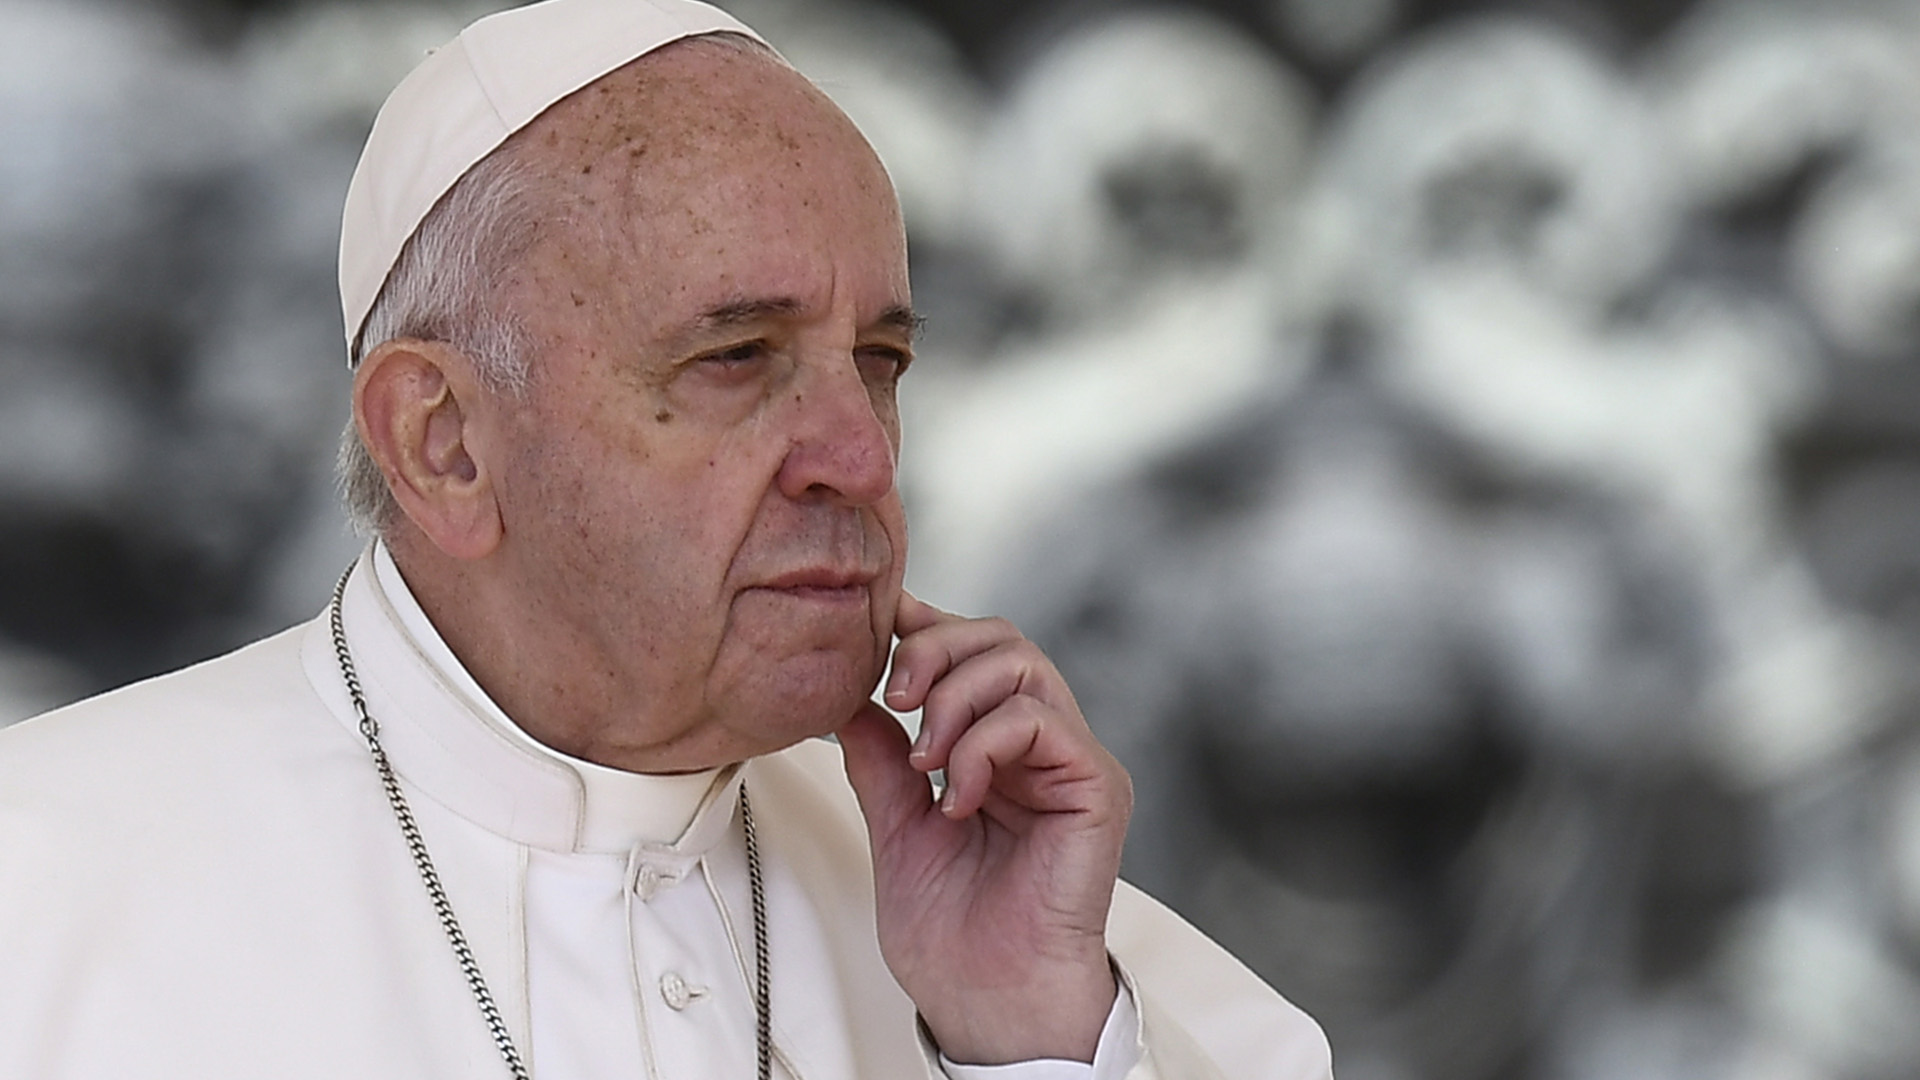 Pope Francis ponders during the weekly general audience on May 8, 2019 at St. Peter's square in the Vatican. (Credit: FILIPPO MONTEFORTE/AFP/Getty Images)